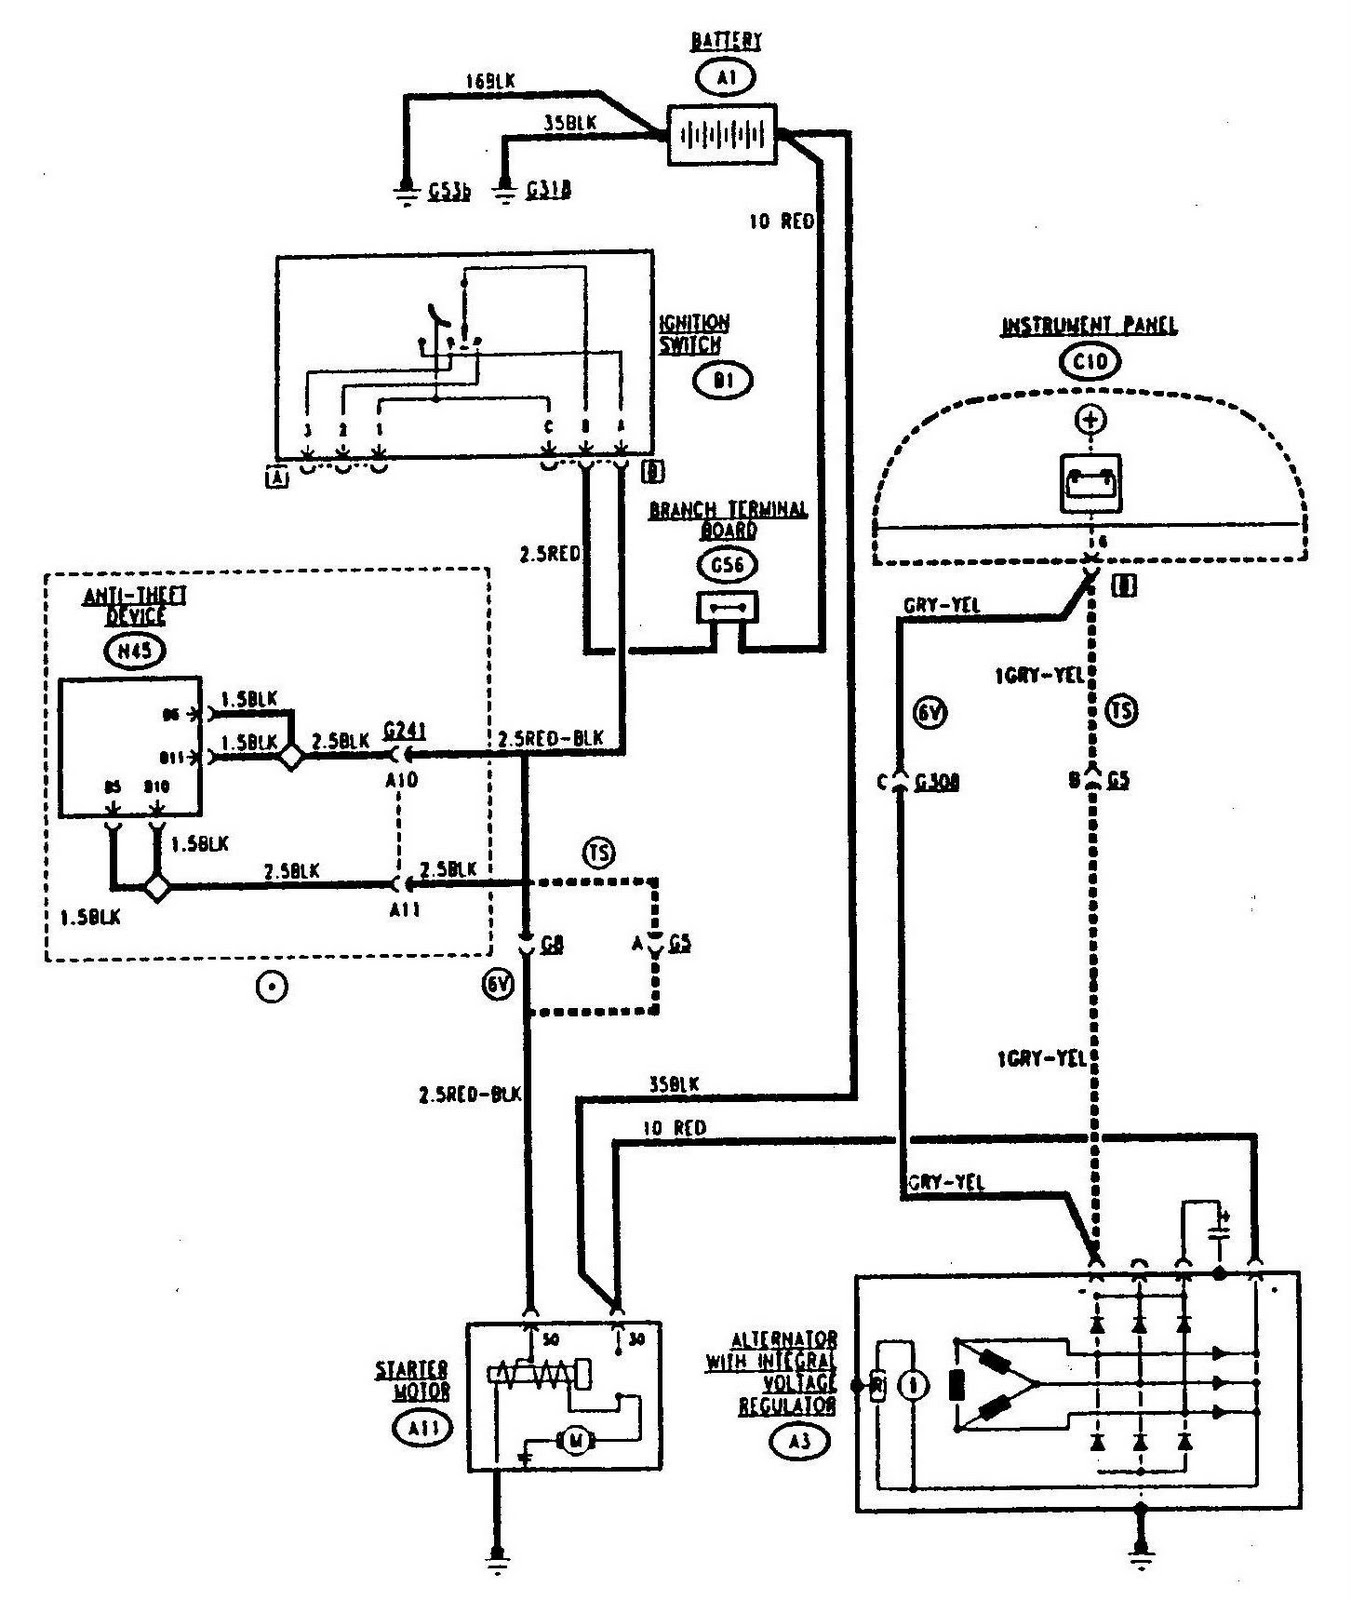 hight resolution of 1351x1600 alfa romeo 155 starting and charging circuit diagram wiringdiagrams